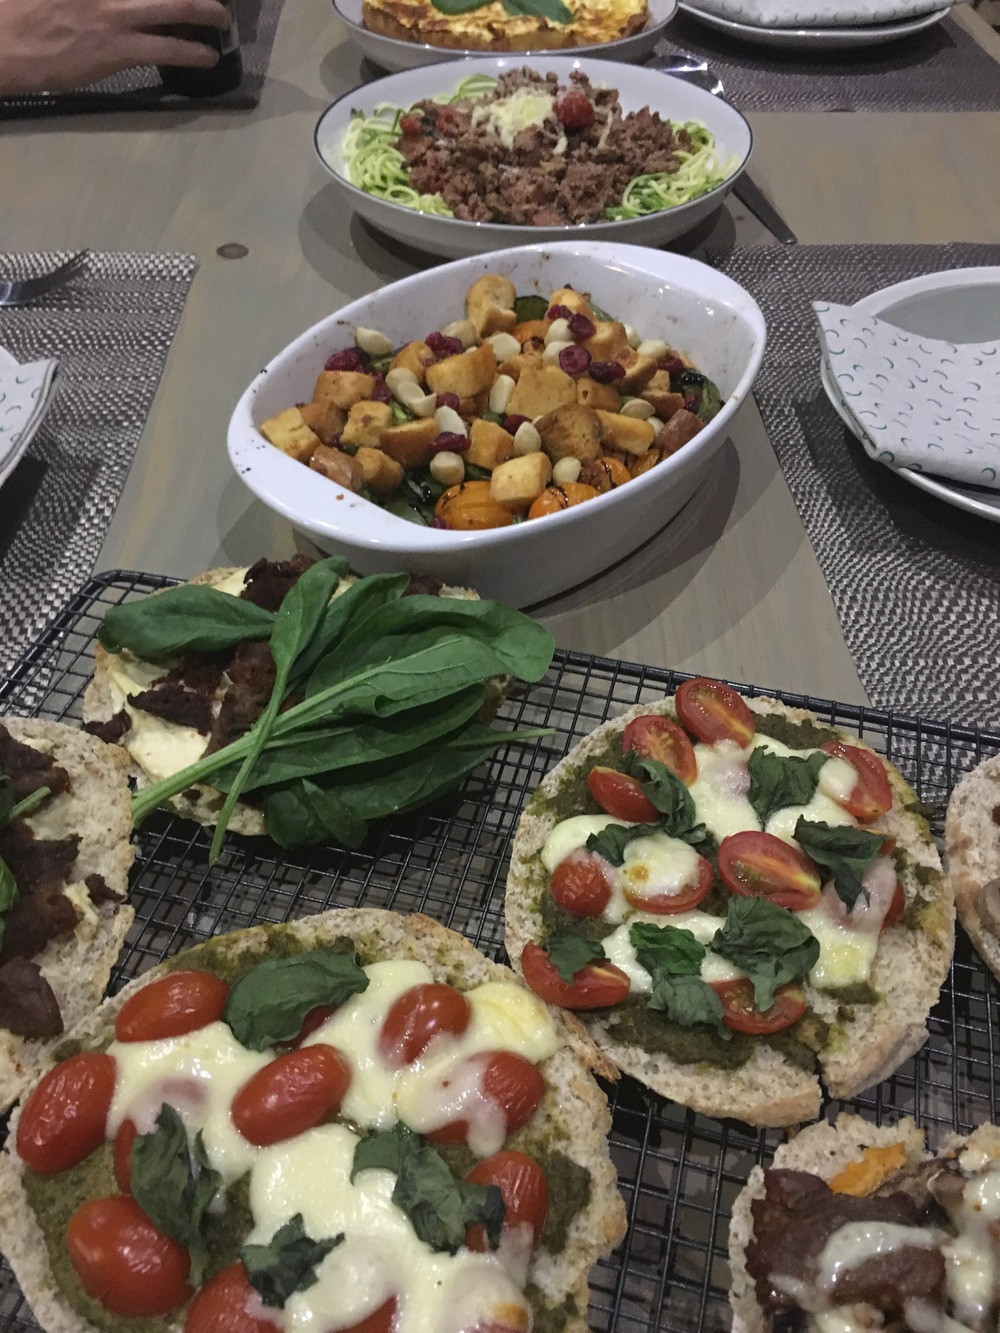 The Italian spread, served family style